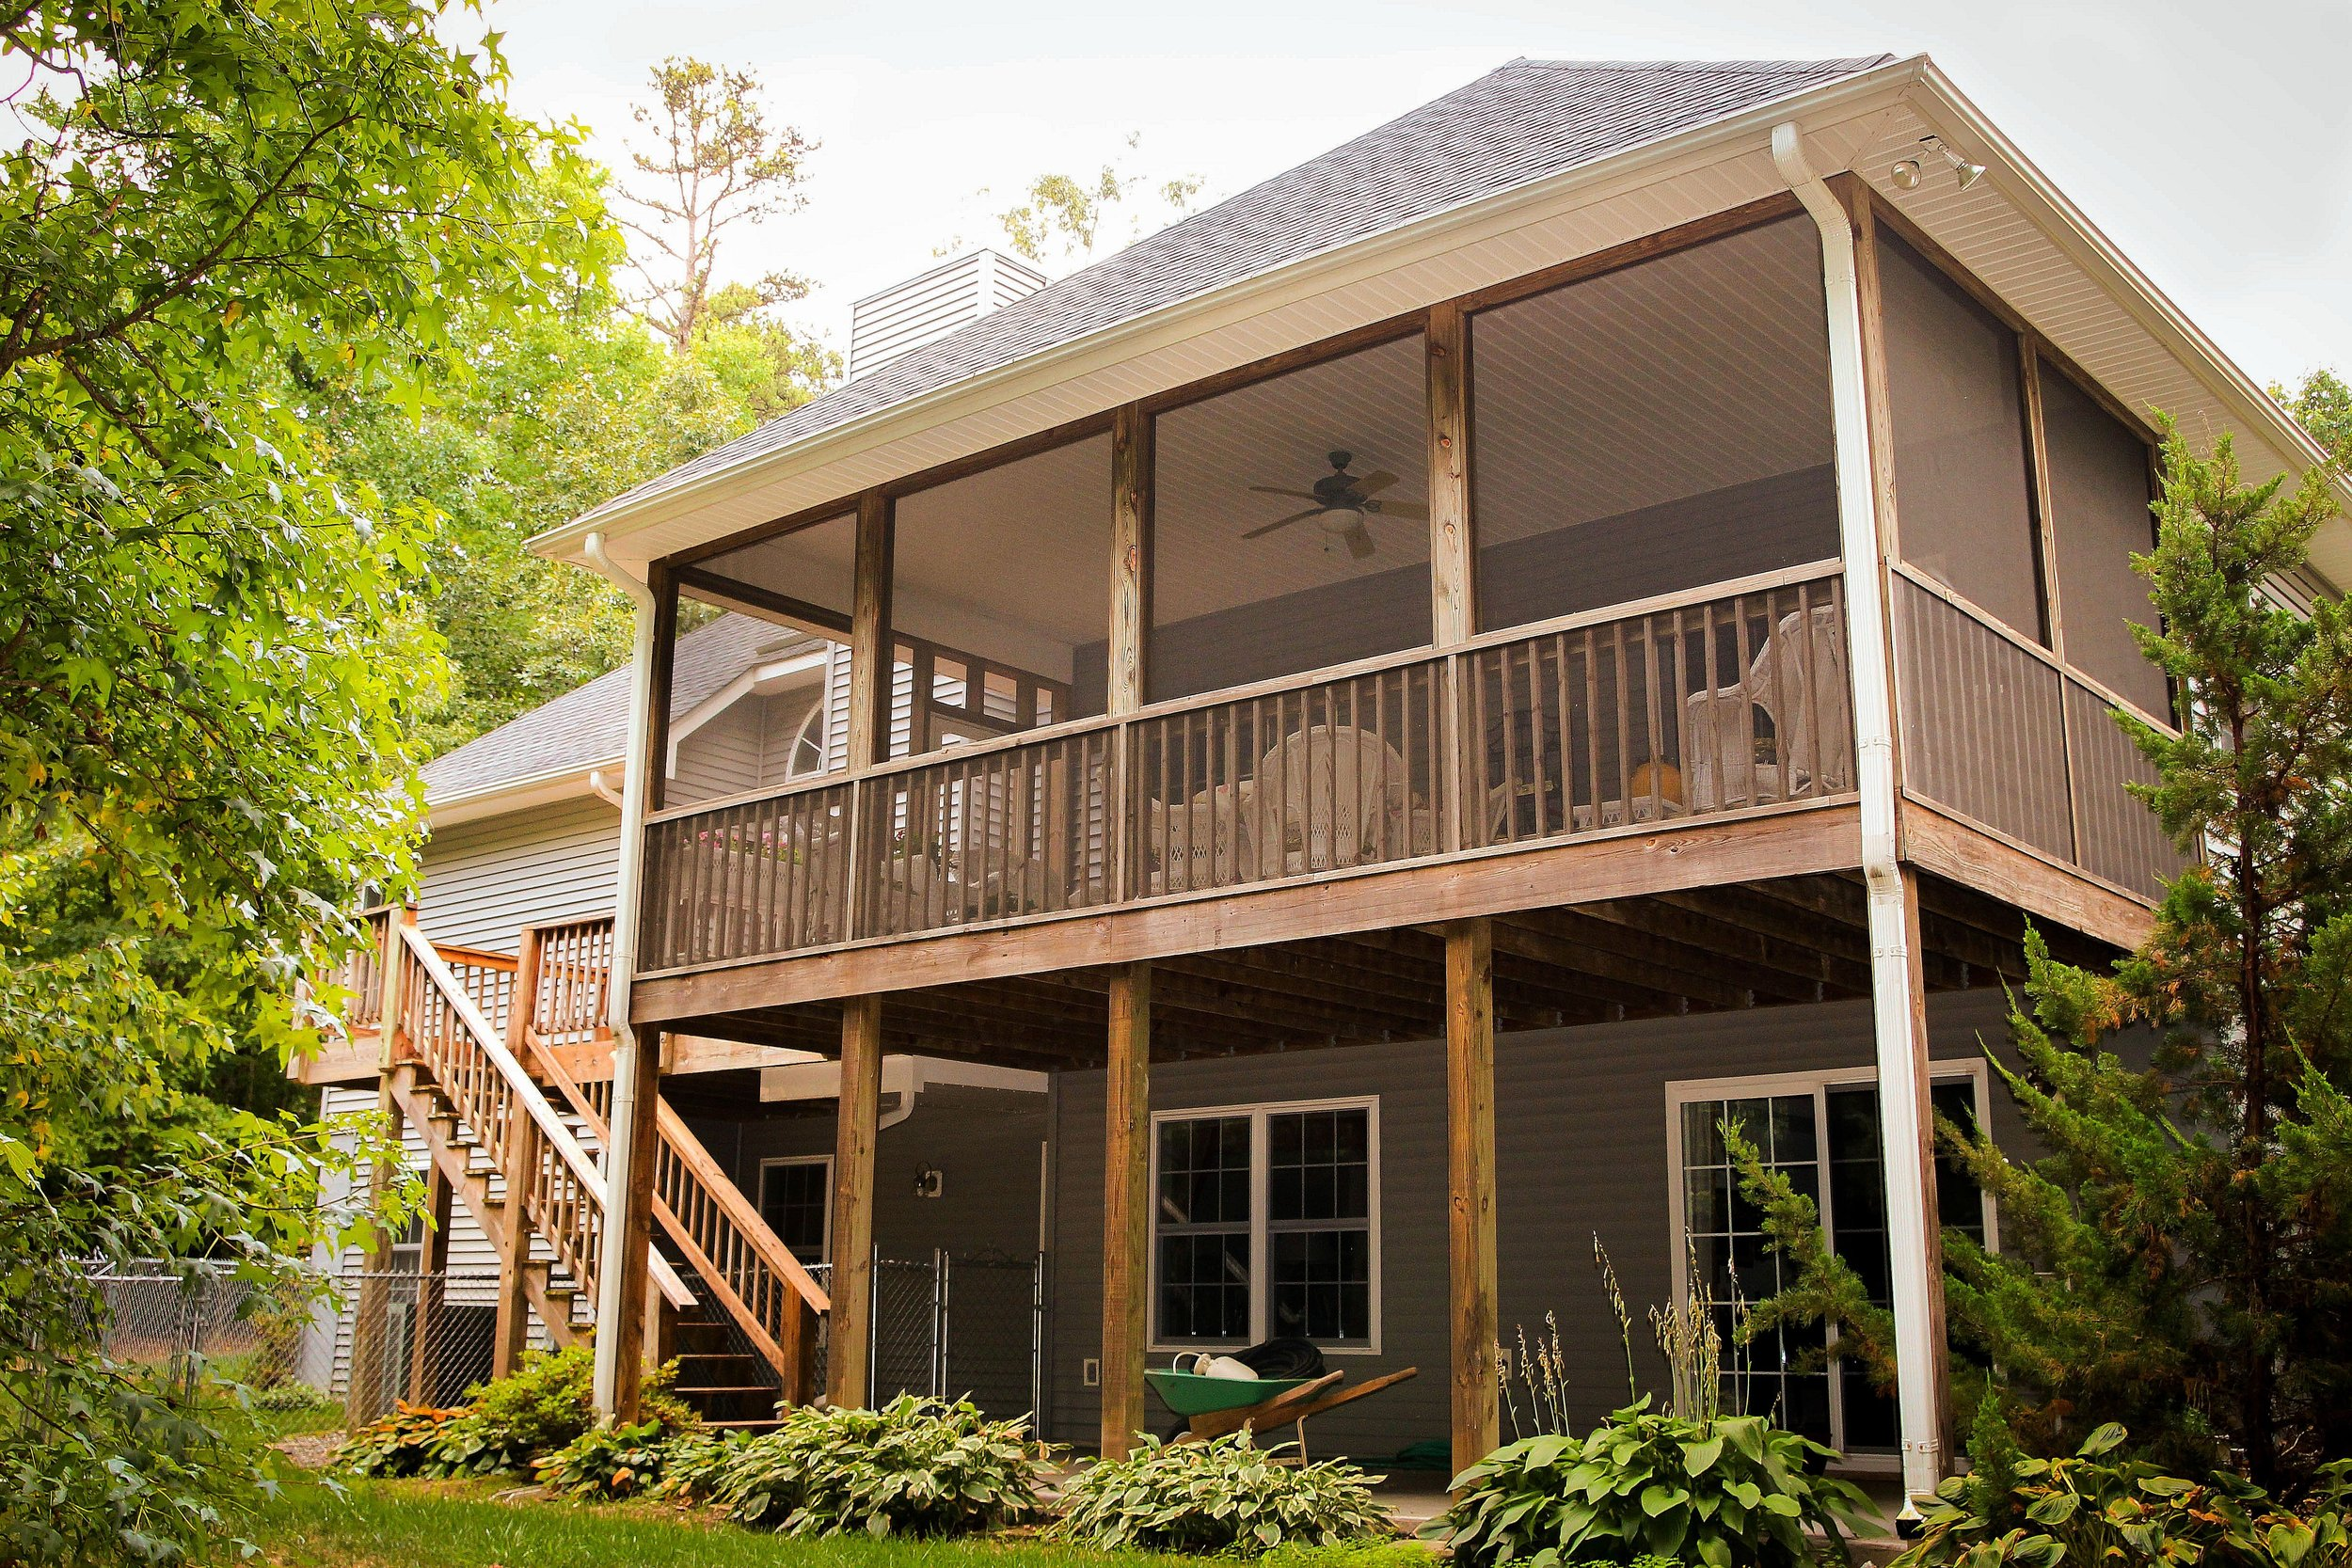 curb-appeal-painting-deck-repair-cleveland-oh.jpg